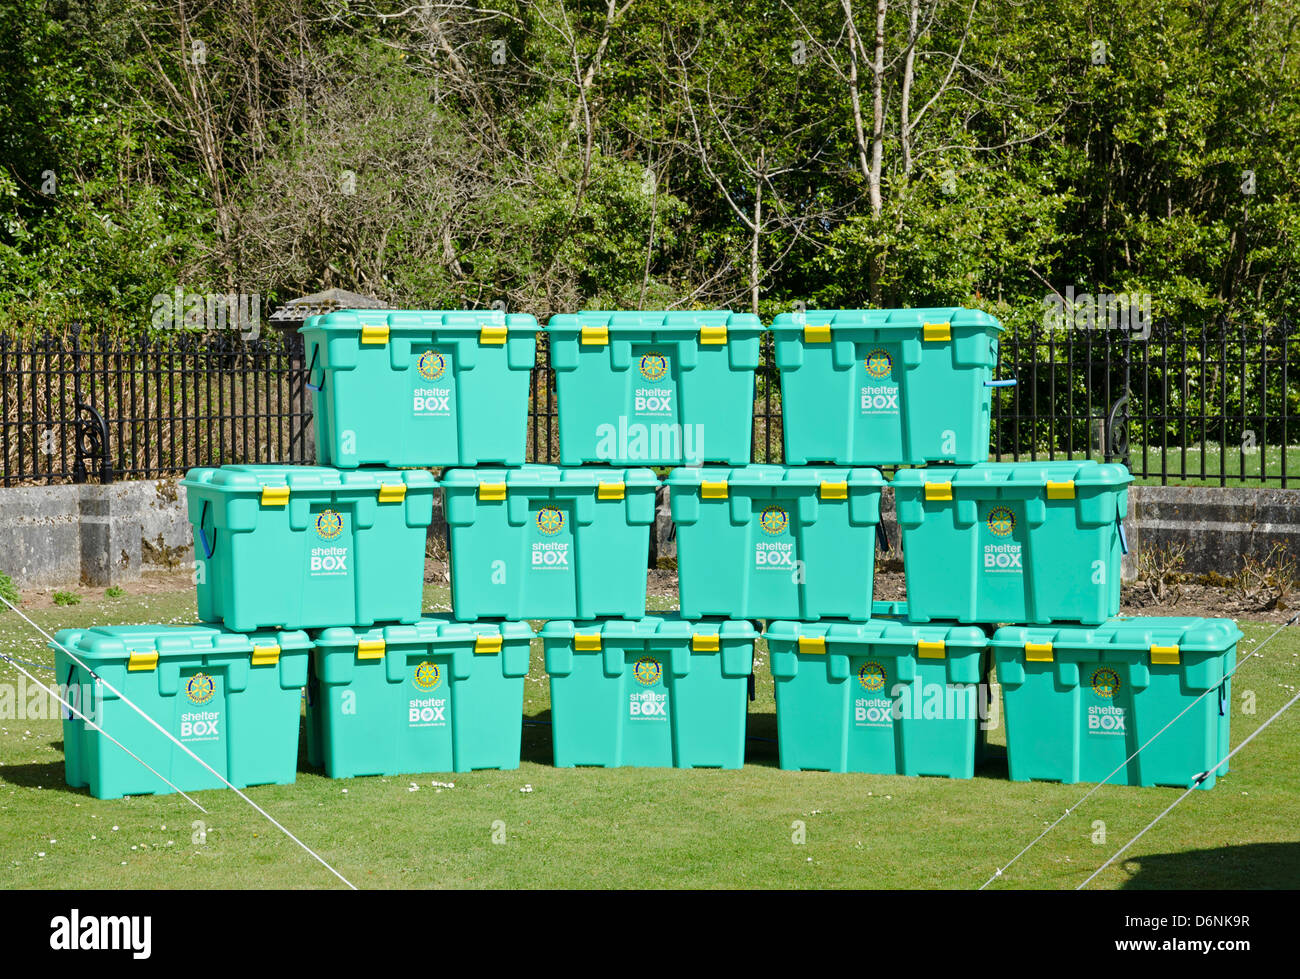 ' Shelter Box '  survival aid boxes at one of the charities exhibitions days in cornwall, uk - Stock Image